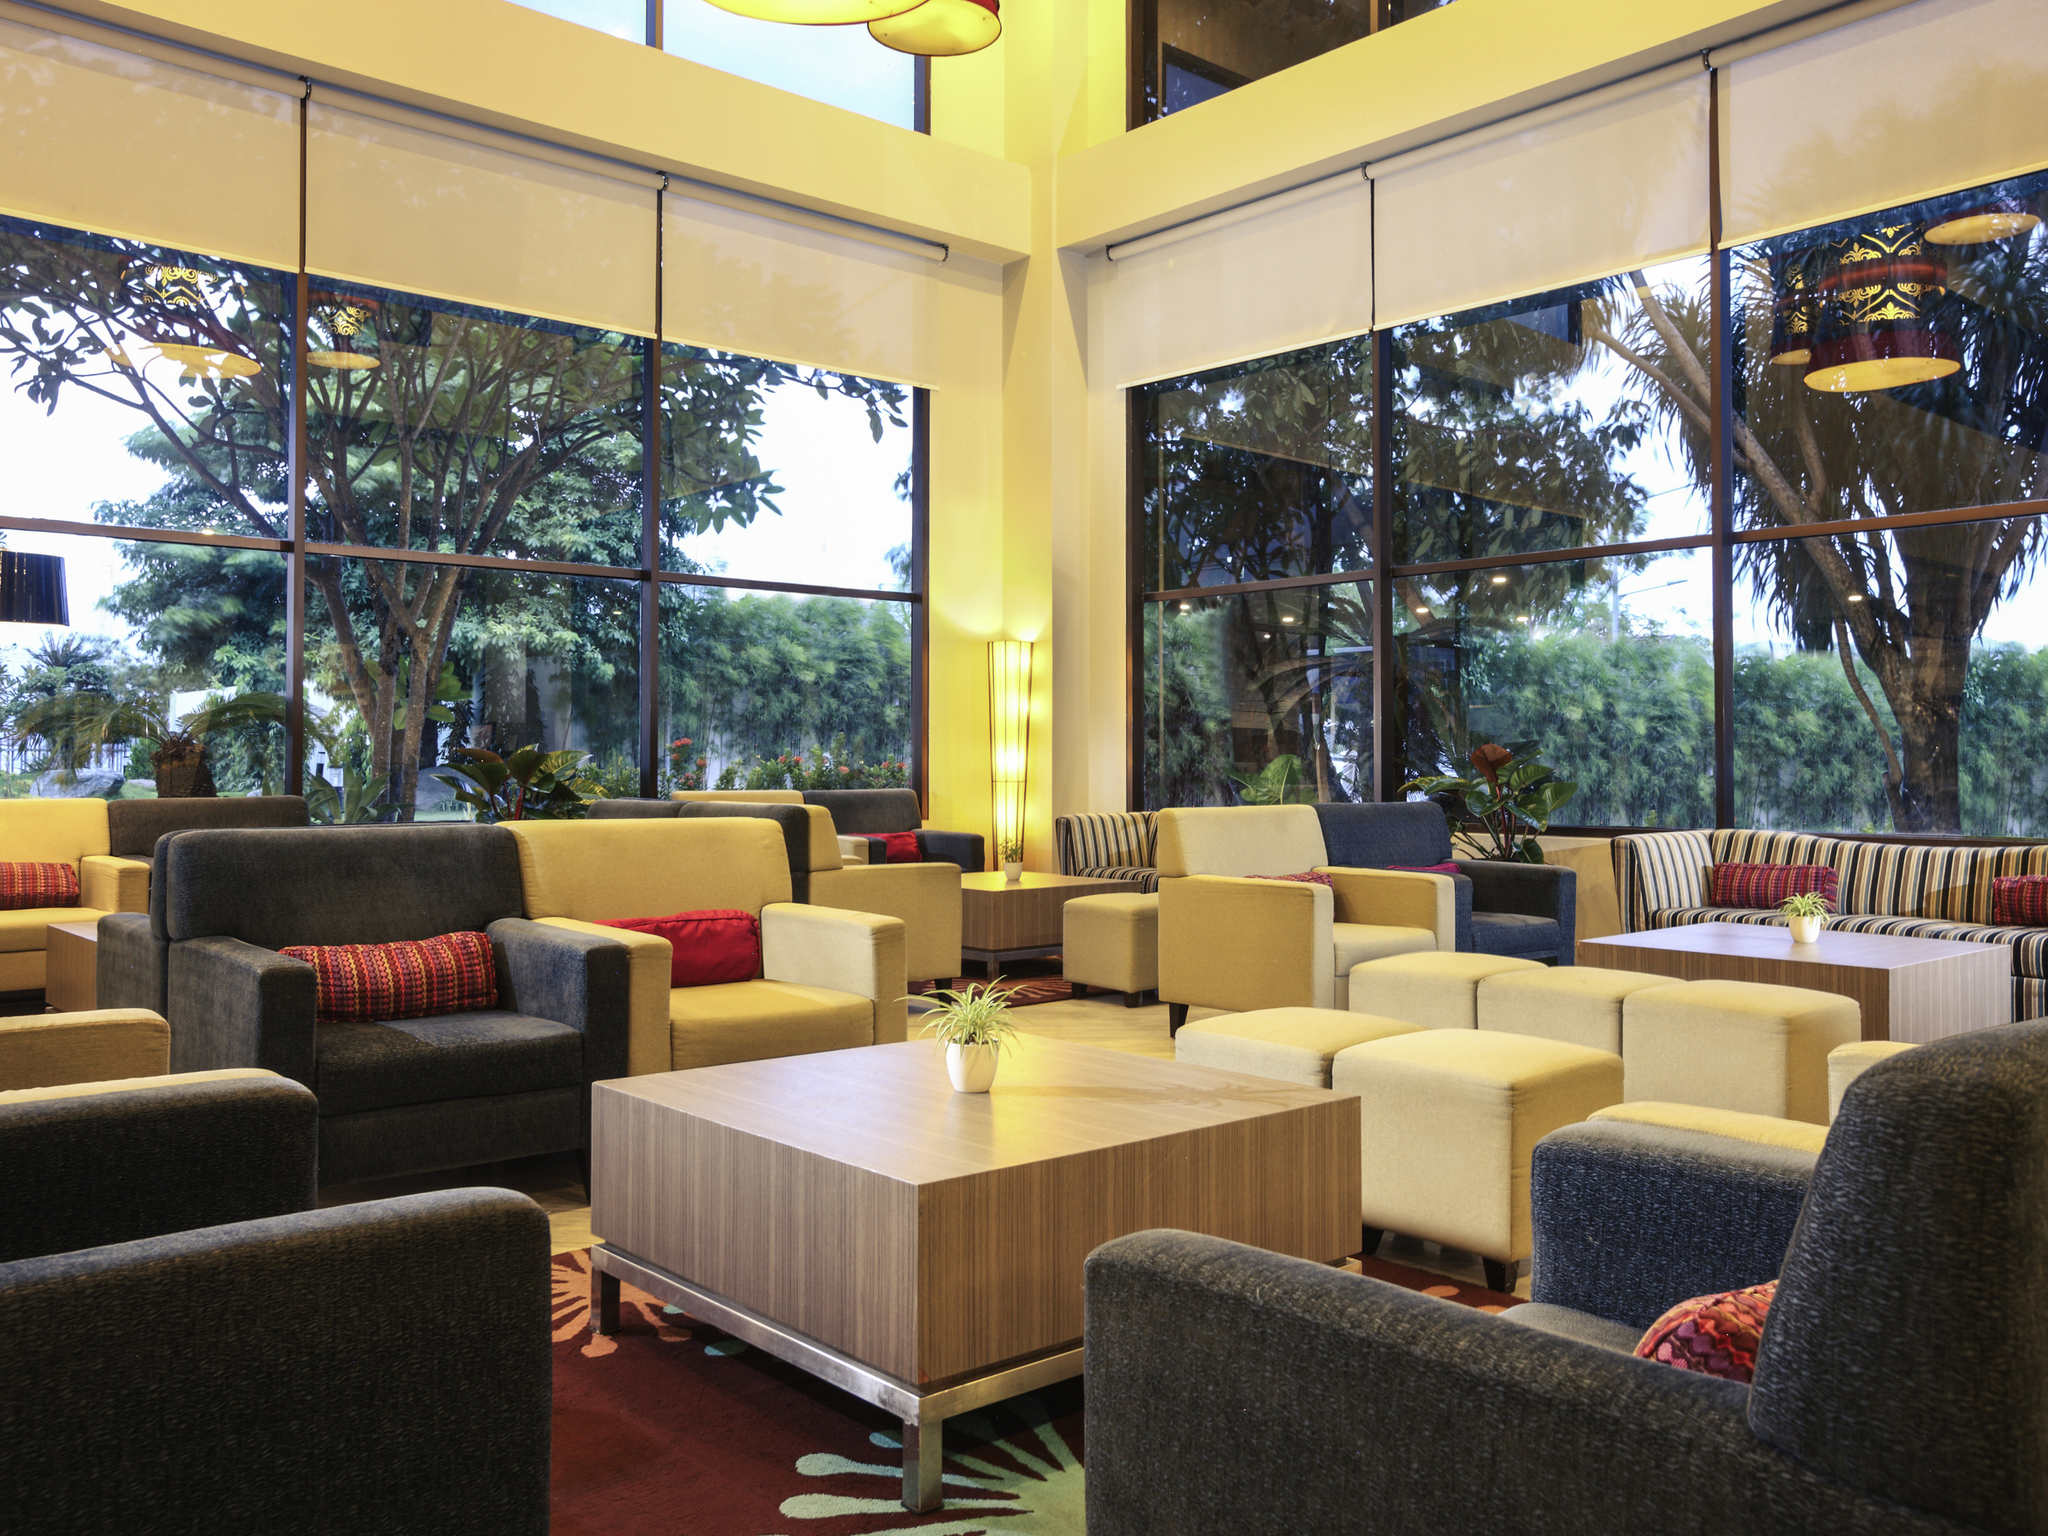 palu furniture. Hotel - Mercure Palu Furniture